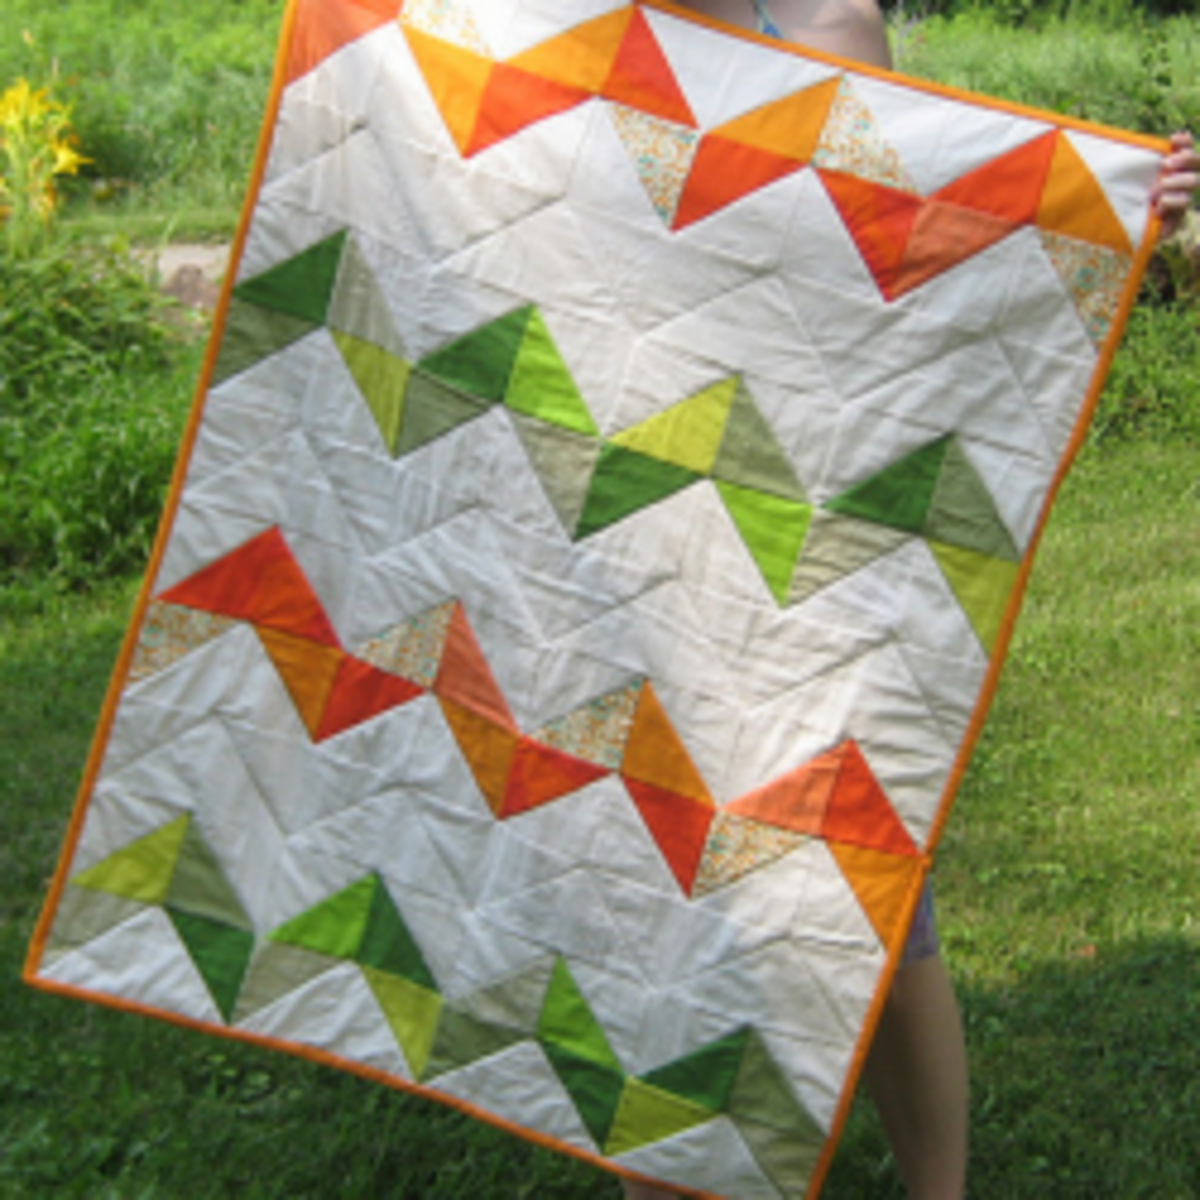 ★ Quilting for Beginners | Free Sewing Patterns & Tutorials For Homemade Quilts ★